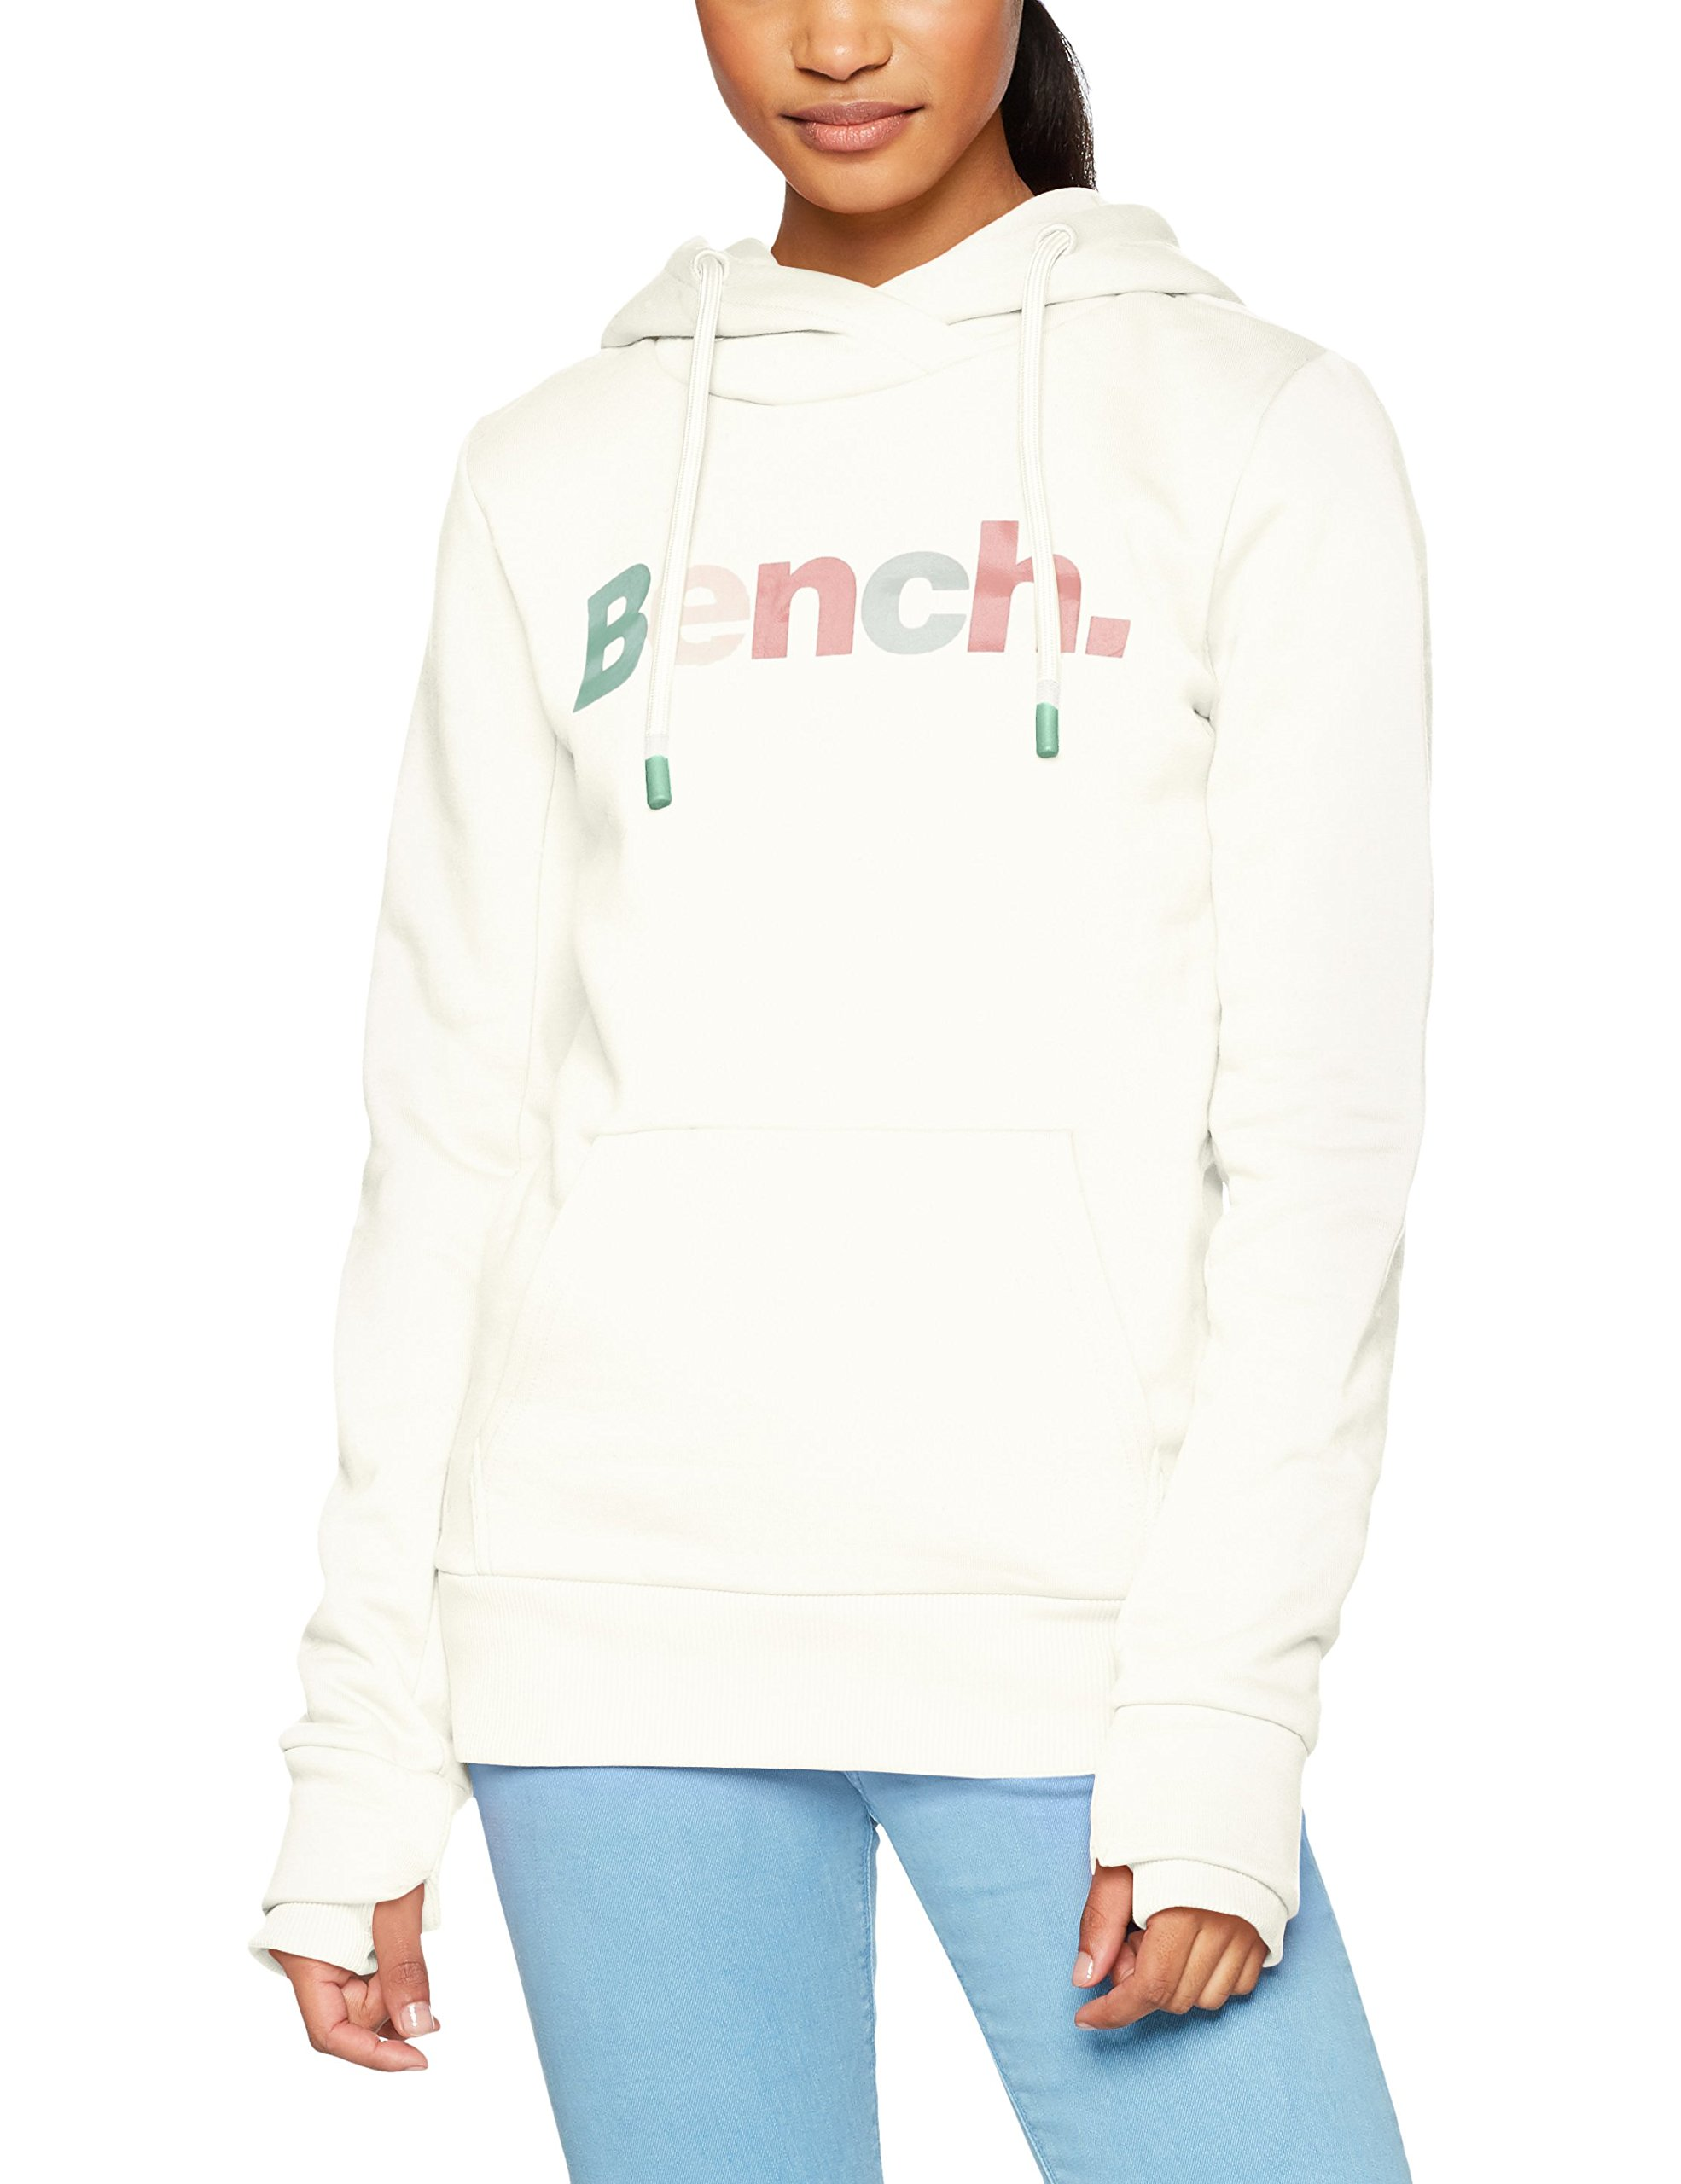 Hoody Wh11210Medium shirt CapucheBlancsnow White À Bench Femme HerCorp Print Sweat KJc35TulF1